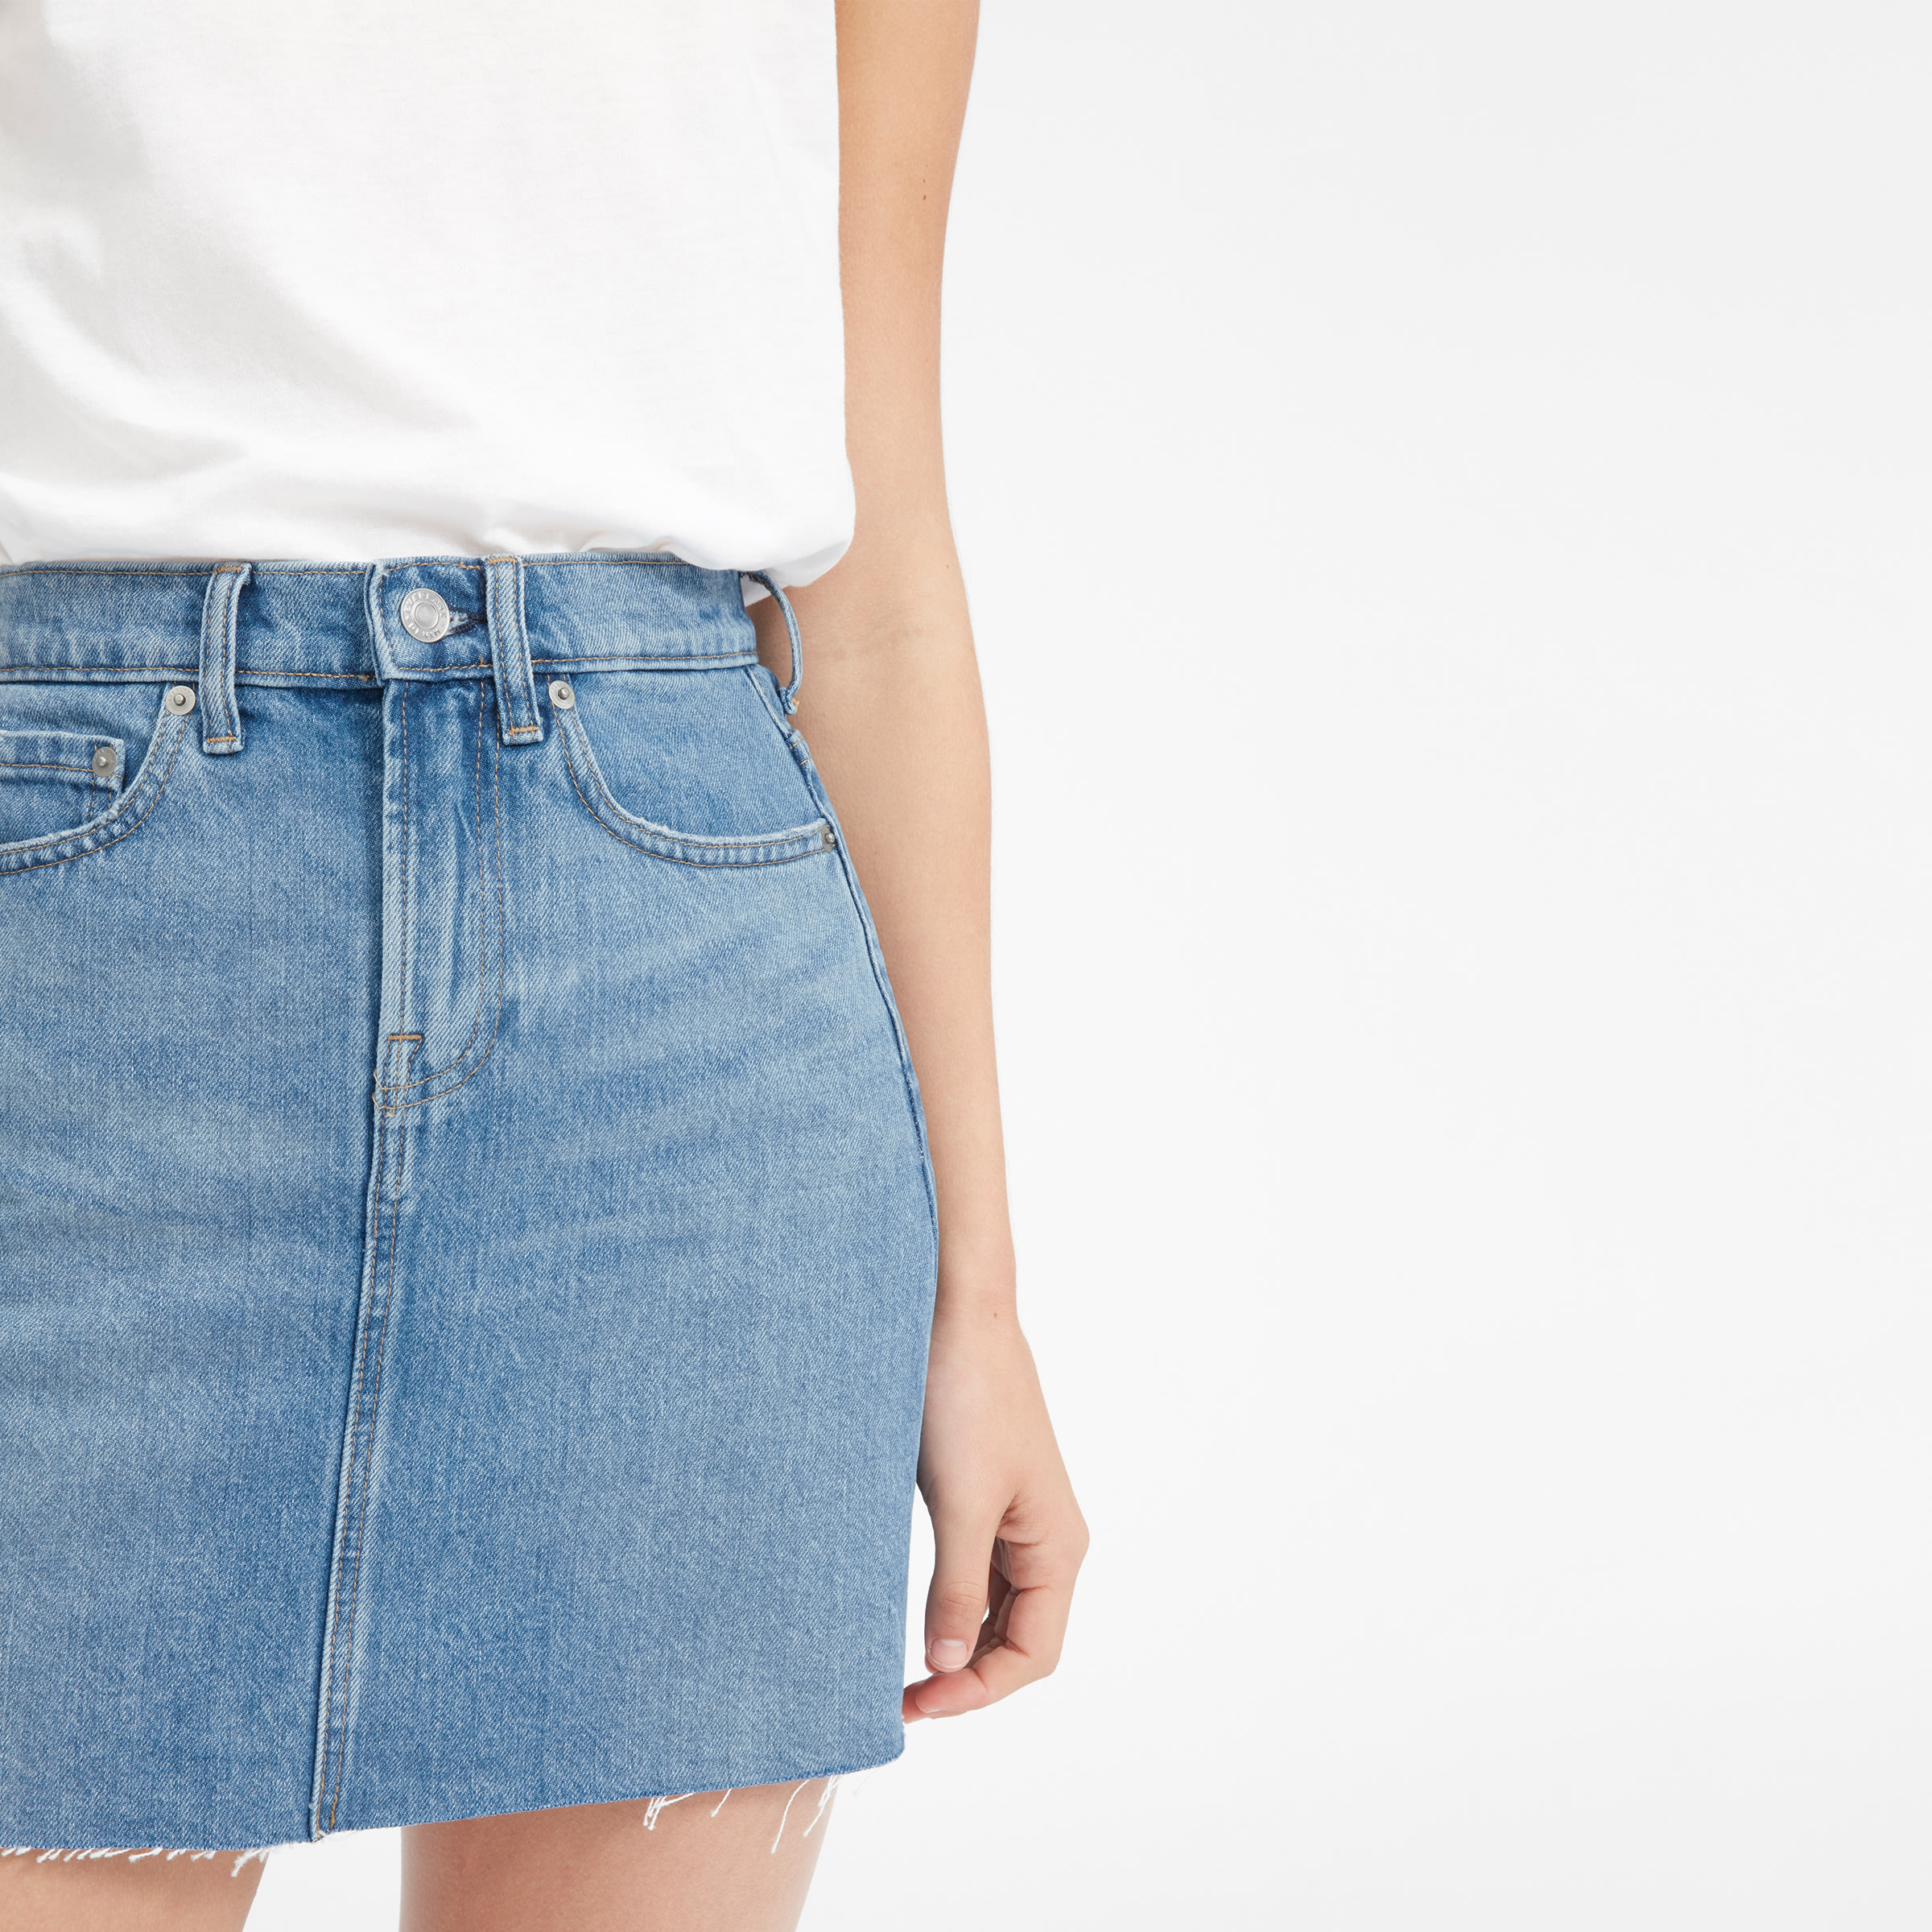 c773c04451 Women's Denim Skirt | Everlane